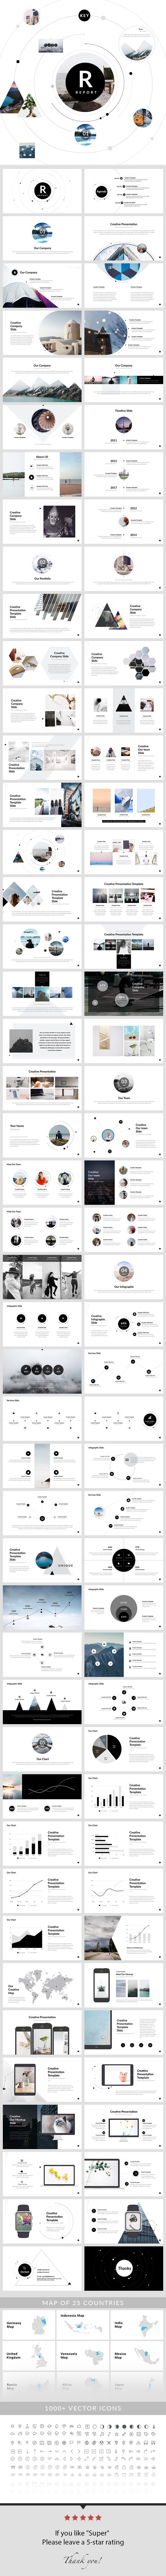 Report Keynote Presentation Template #plan #1920x1080 • Download ➝ https://graphicriver.net/item/report-keynote-presentation-template/19509845?ref=pxcr